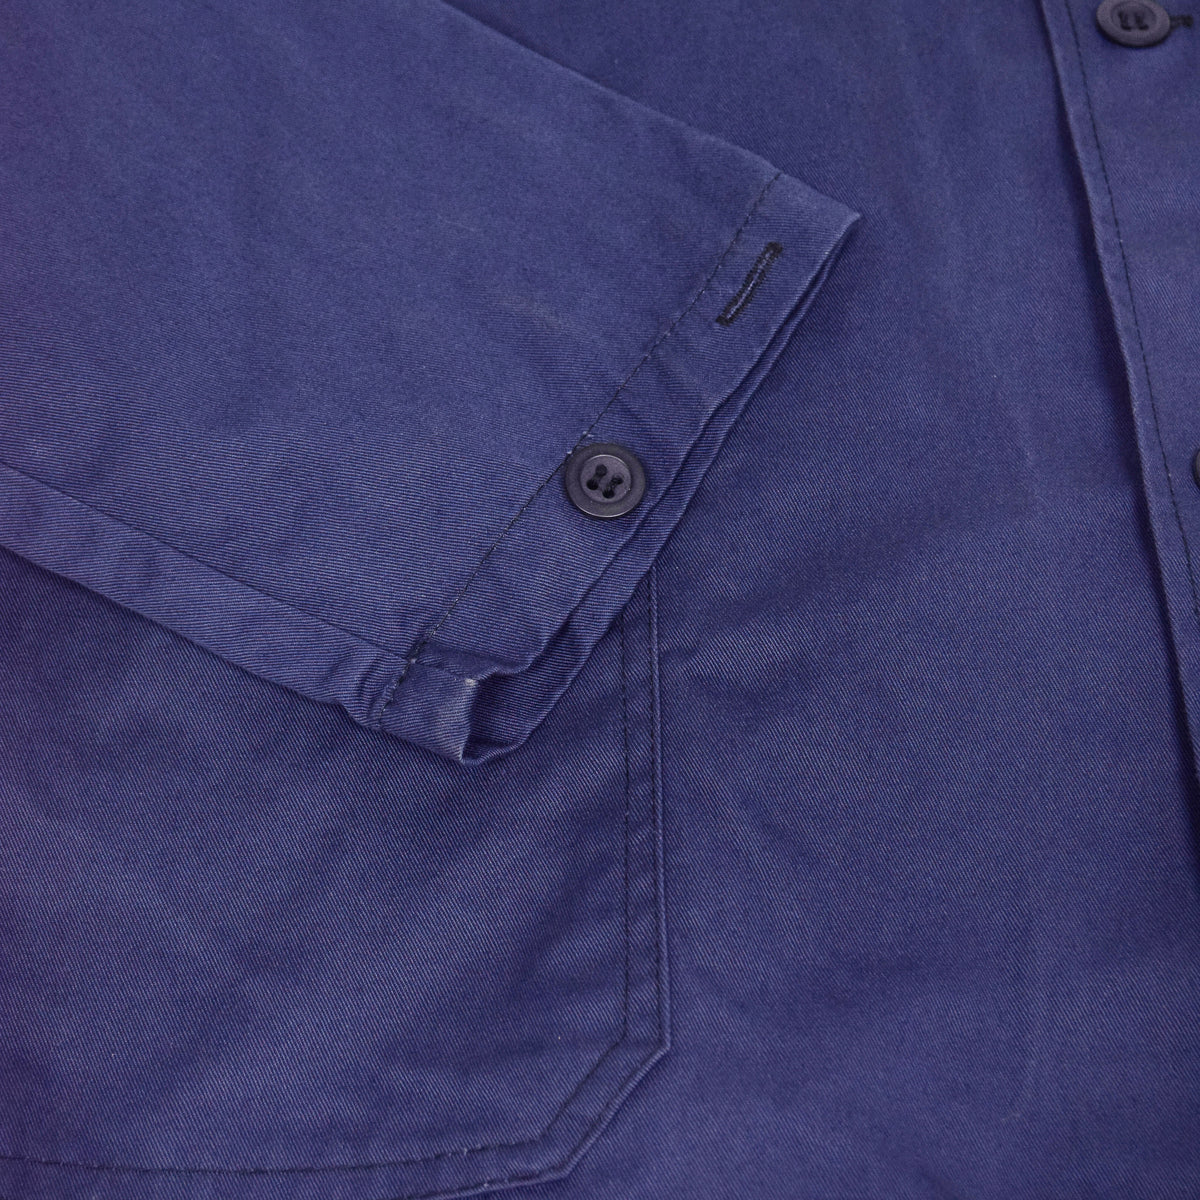 Vintage Purple Blue French Style Worker Sanforized Cotton Twill Chore Jacket L